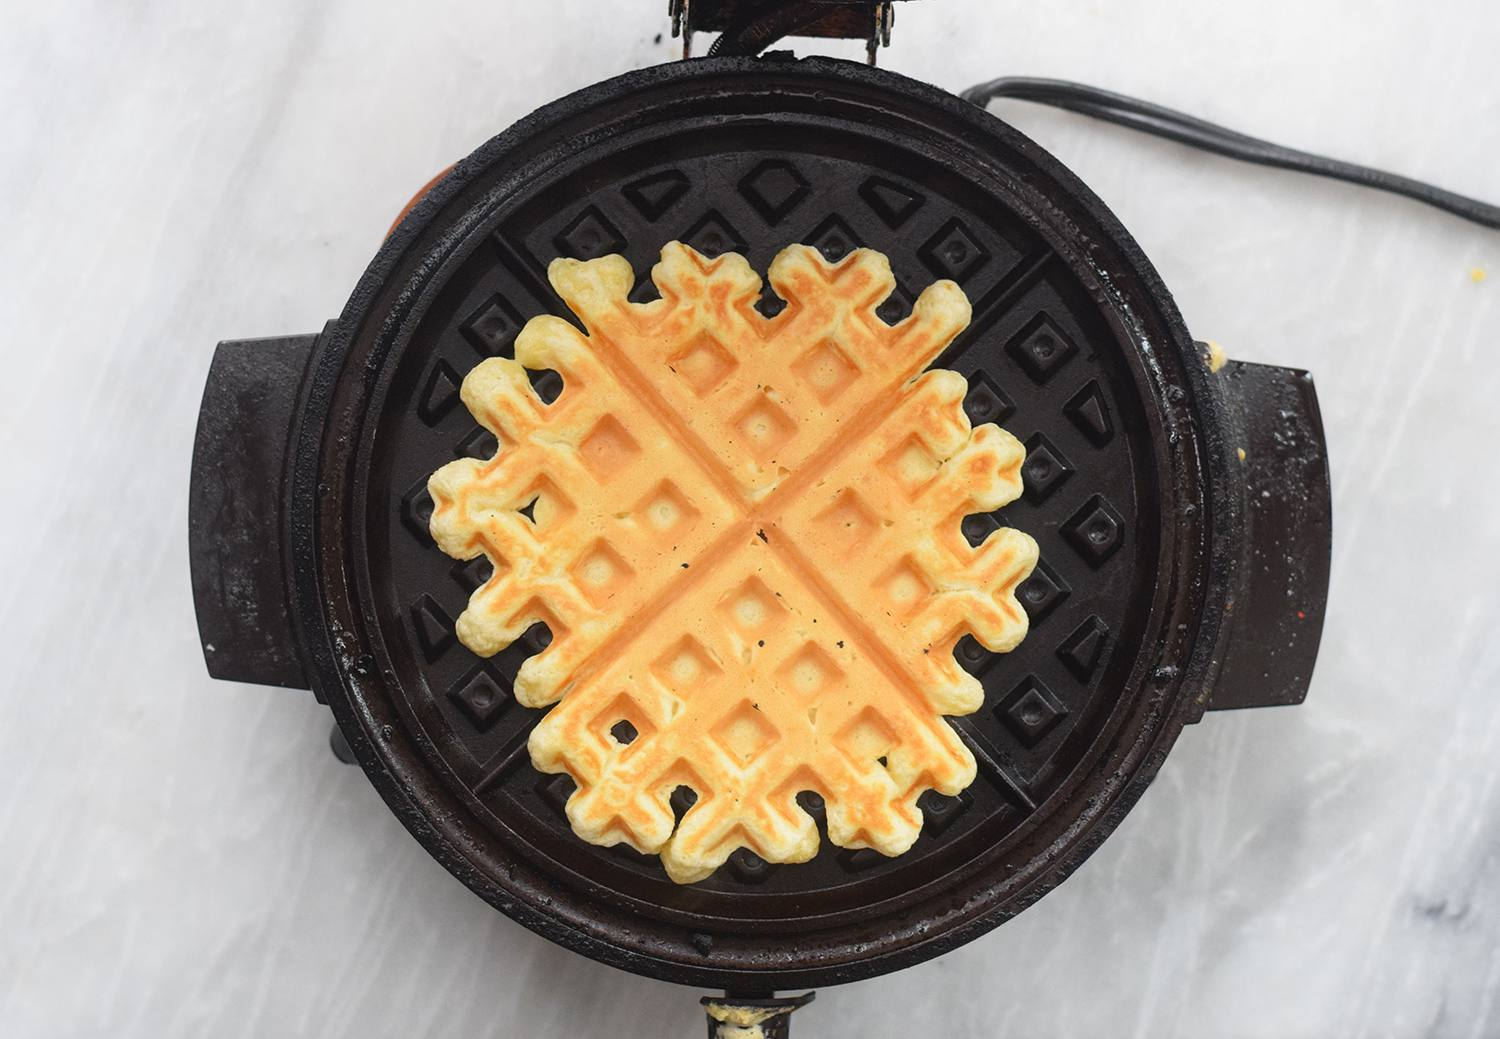 Cook the waffles